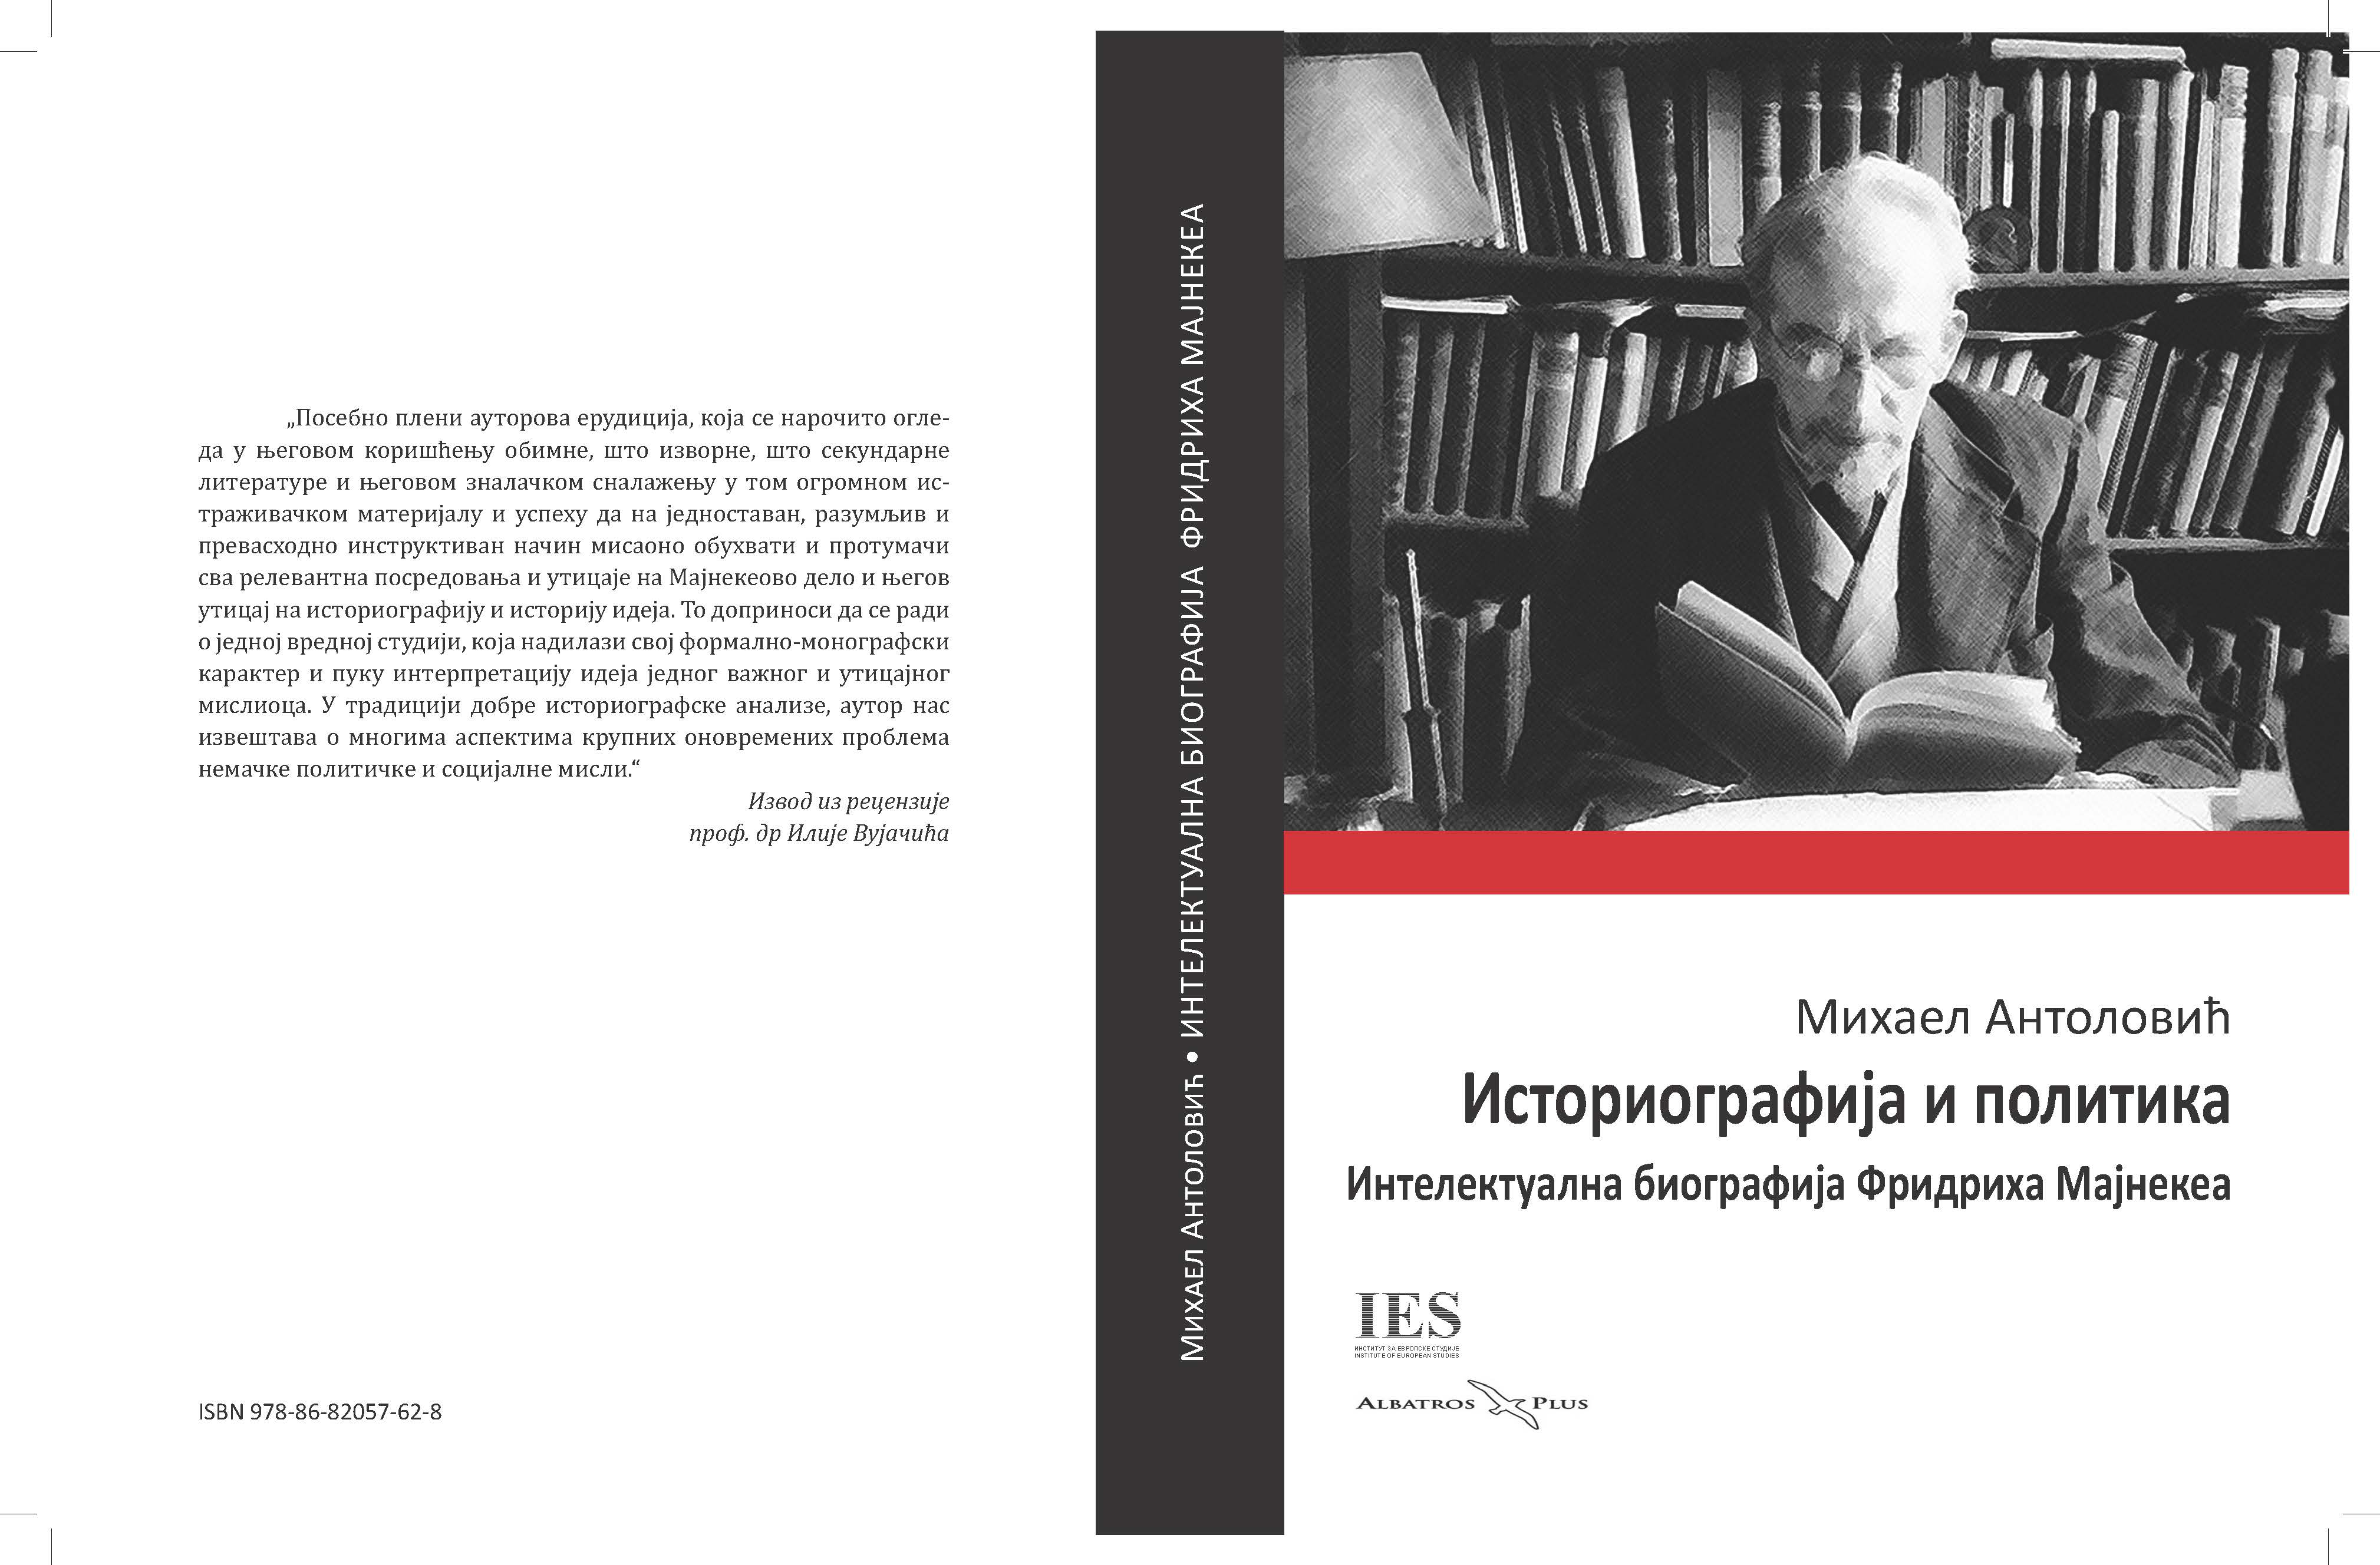 Historiography and Politics. The Intellectual Biography of Friedrich Meinecke (1862-1954)